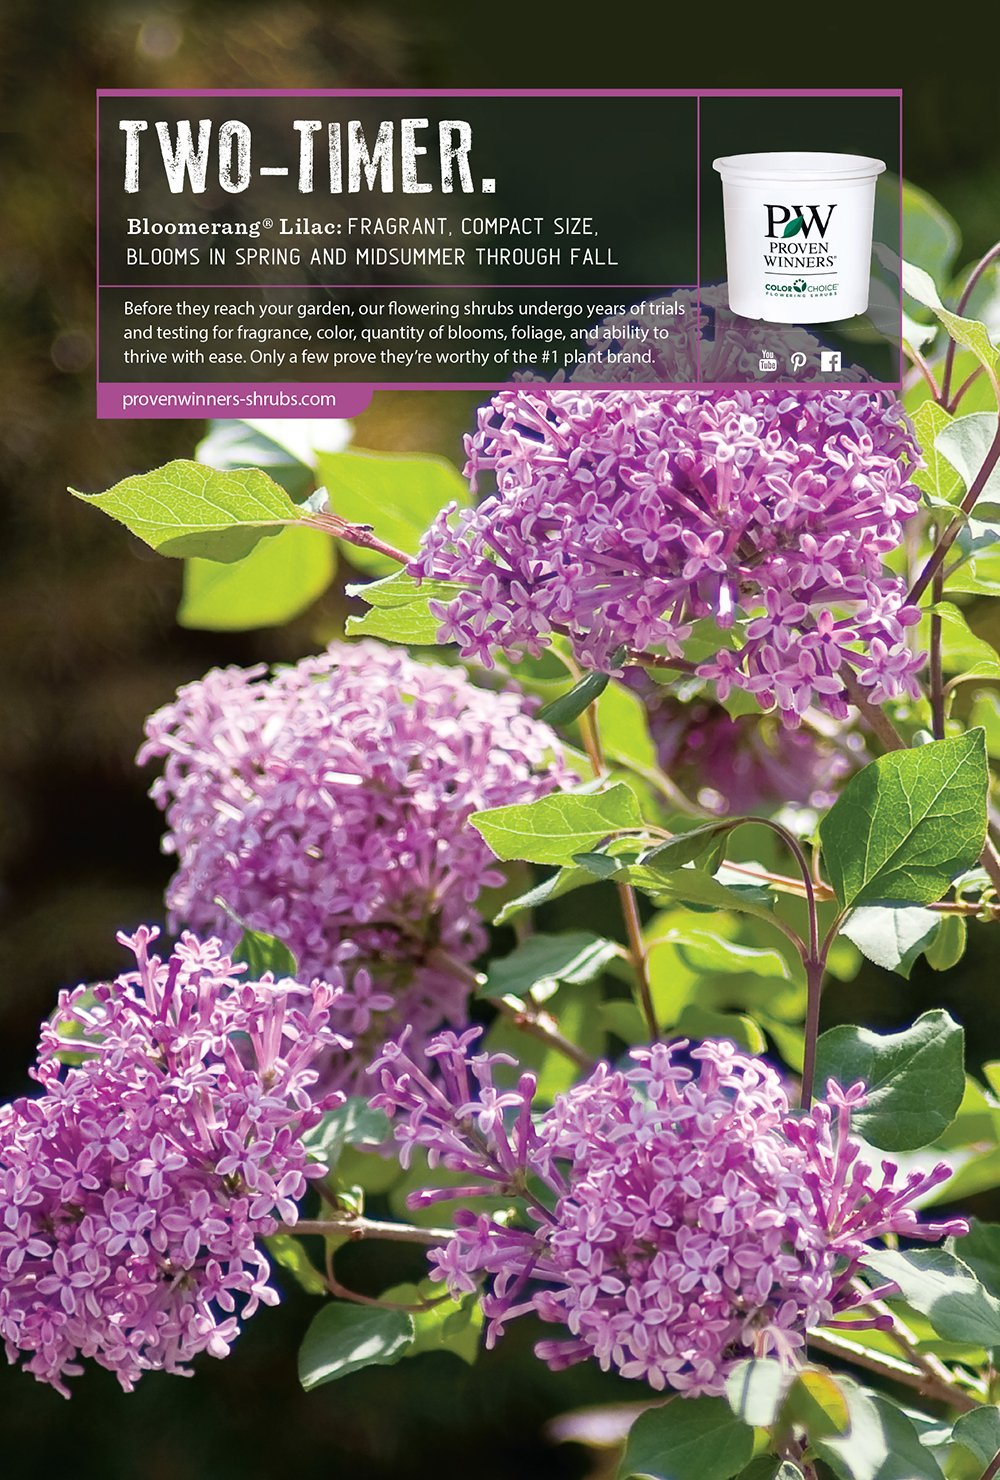 Proven winners flowering shrubs proven winners flowering shrubs once is never enough for this timeless fragrance so our bloomerang reblooming lilacs blossom in spring then summer through fall in purple dark purple or mightylinksfo